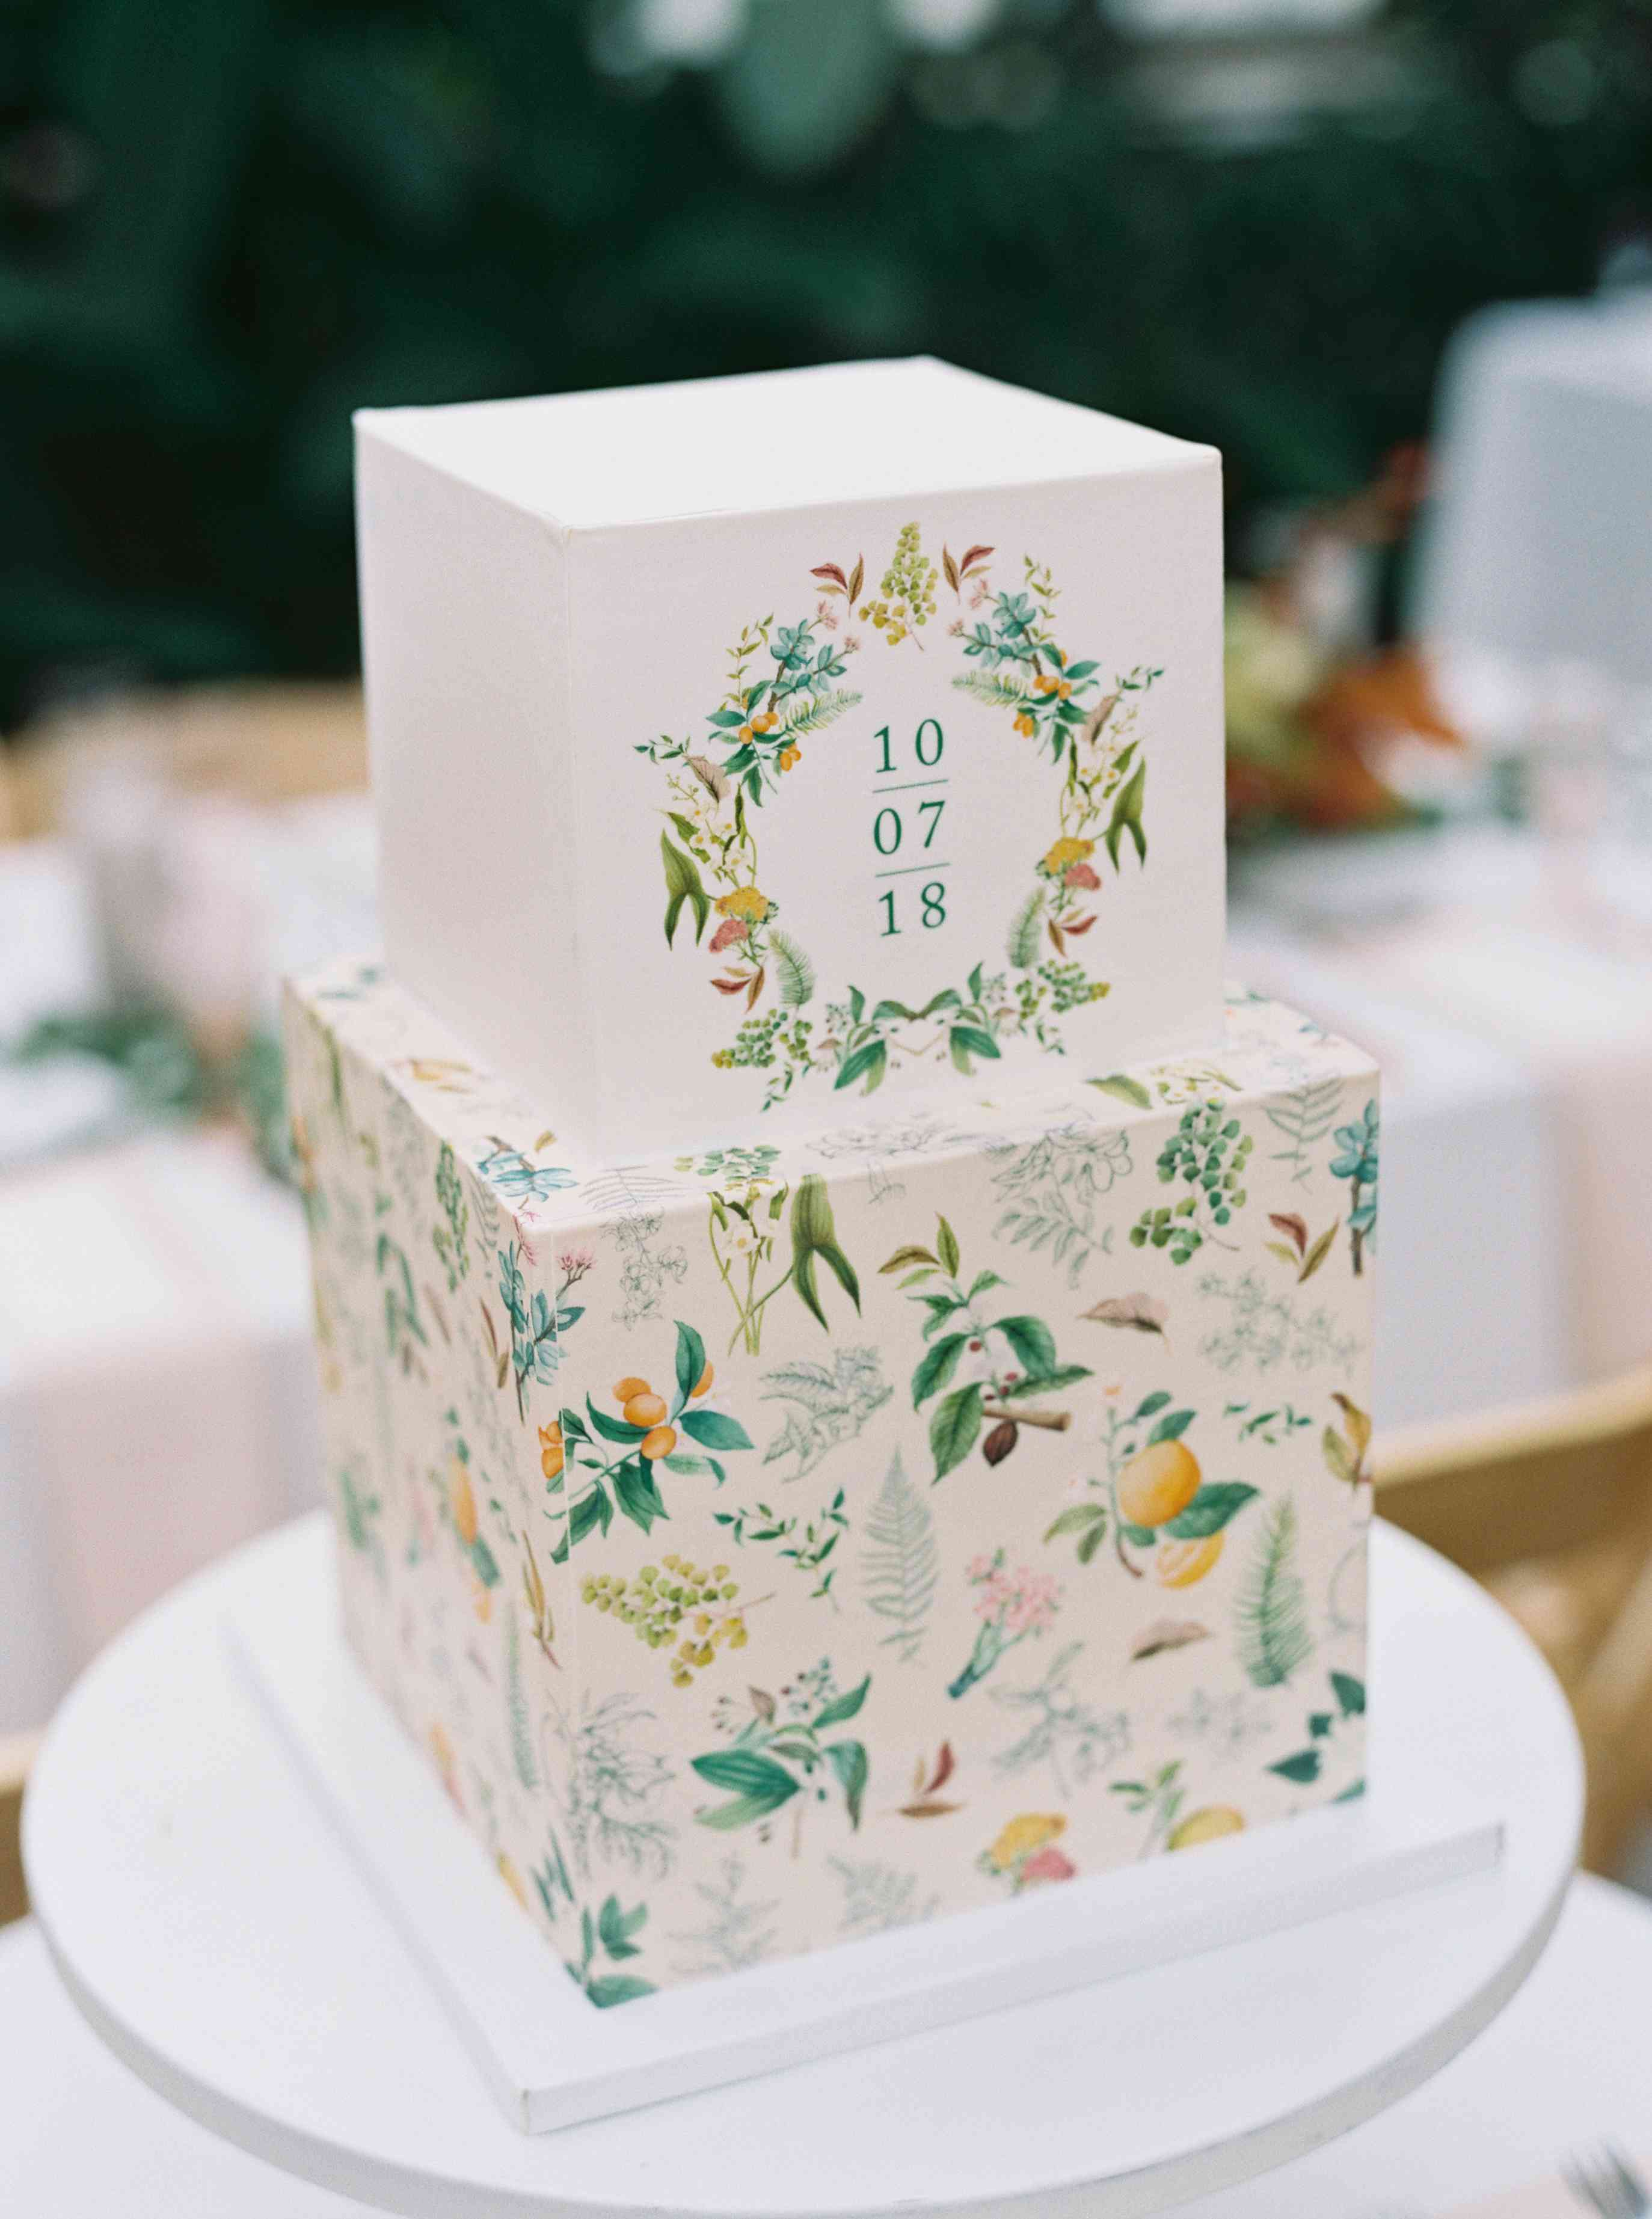 Two-tiered square wedding cake with floral print and the wedding date printed on the top tier